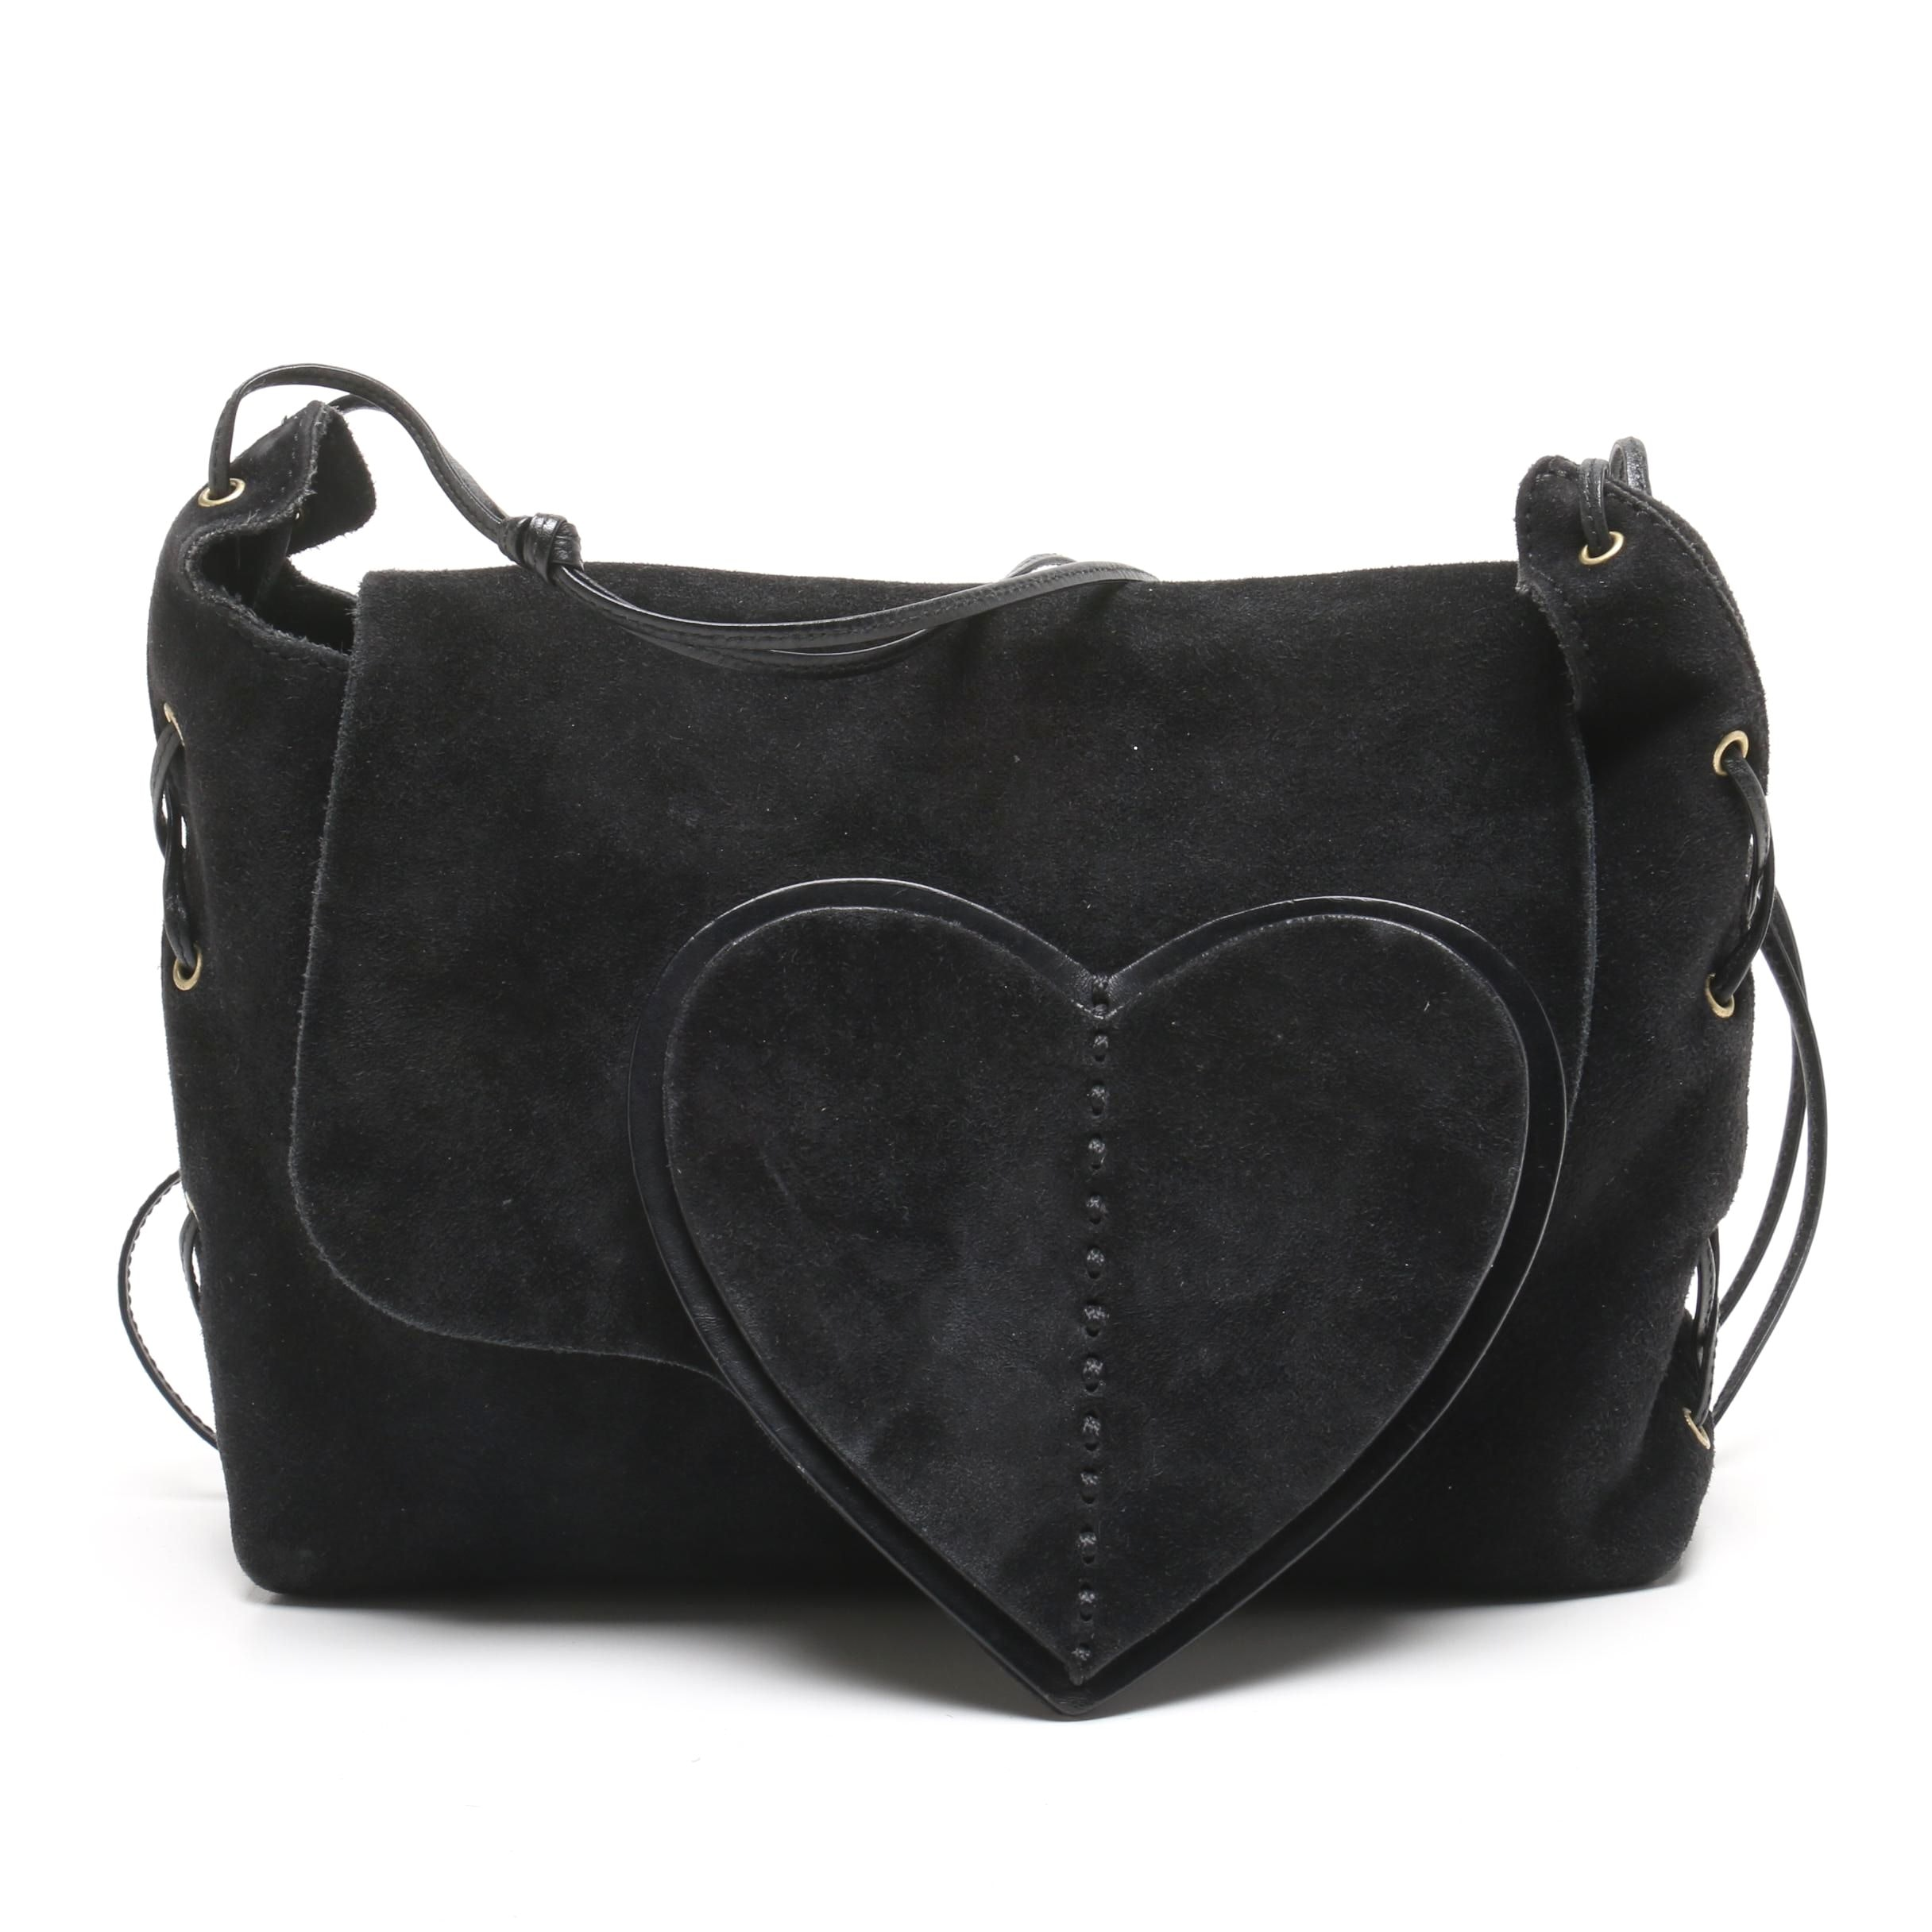 Gucci Black Suede Heart Shoulder Bag Designed by Tom Ford